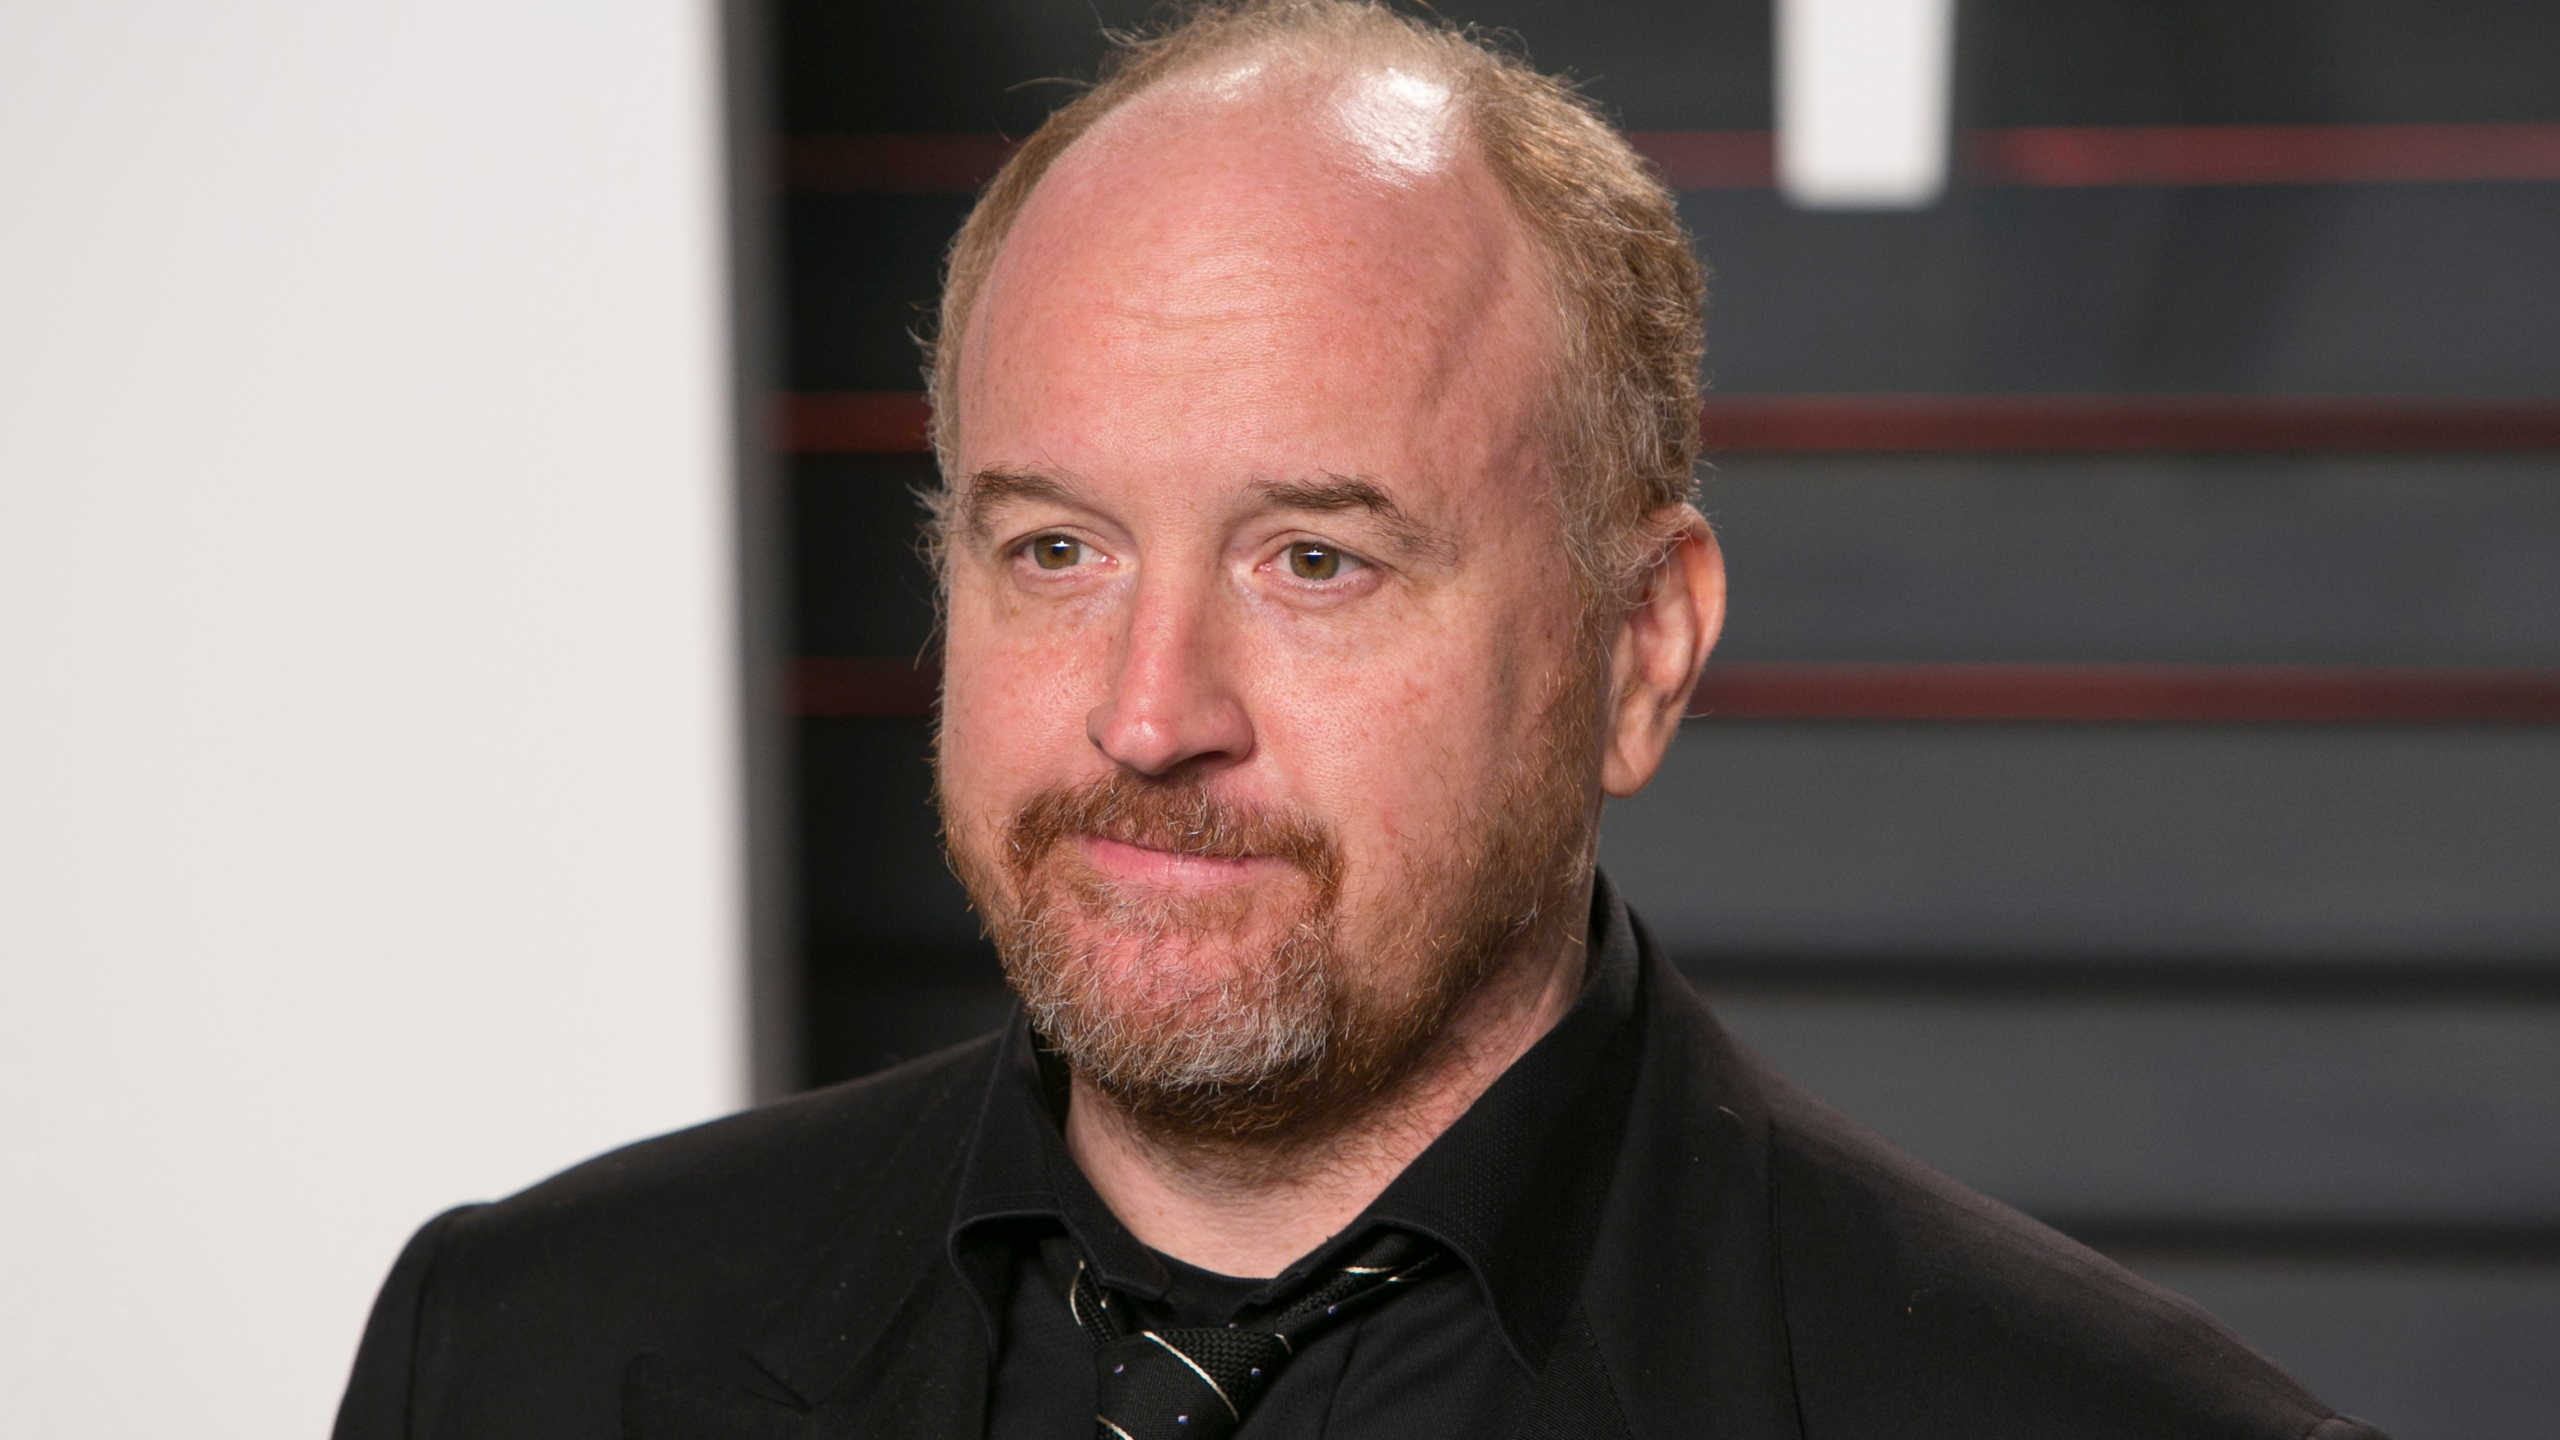 Comedian Louis C.K. poses as he arrives to the 2016 Vanity Fair Oscar Party in Beverly Hills on Feb. 28, 2016. (Credit: Adrian Sanchez Gonzalez/AFP/Getty Images)